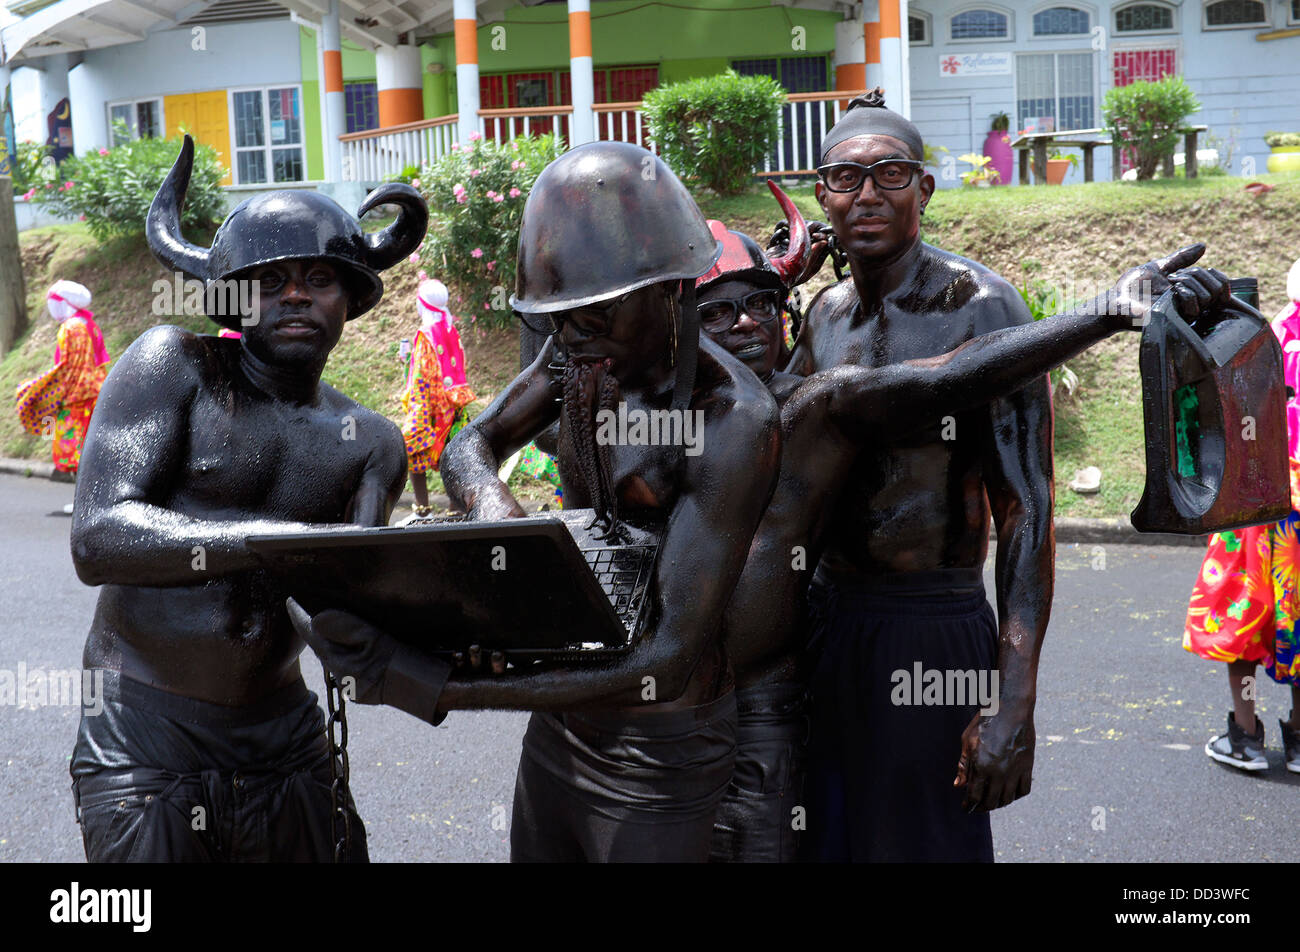 Grenada's Caribbean annual carnival Jab Jab revelers have painted their bodies black, put red helmets with make - Stock Image